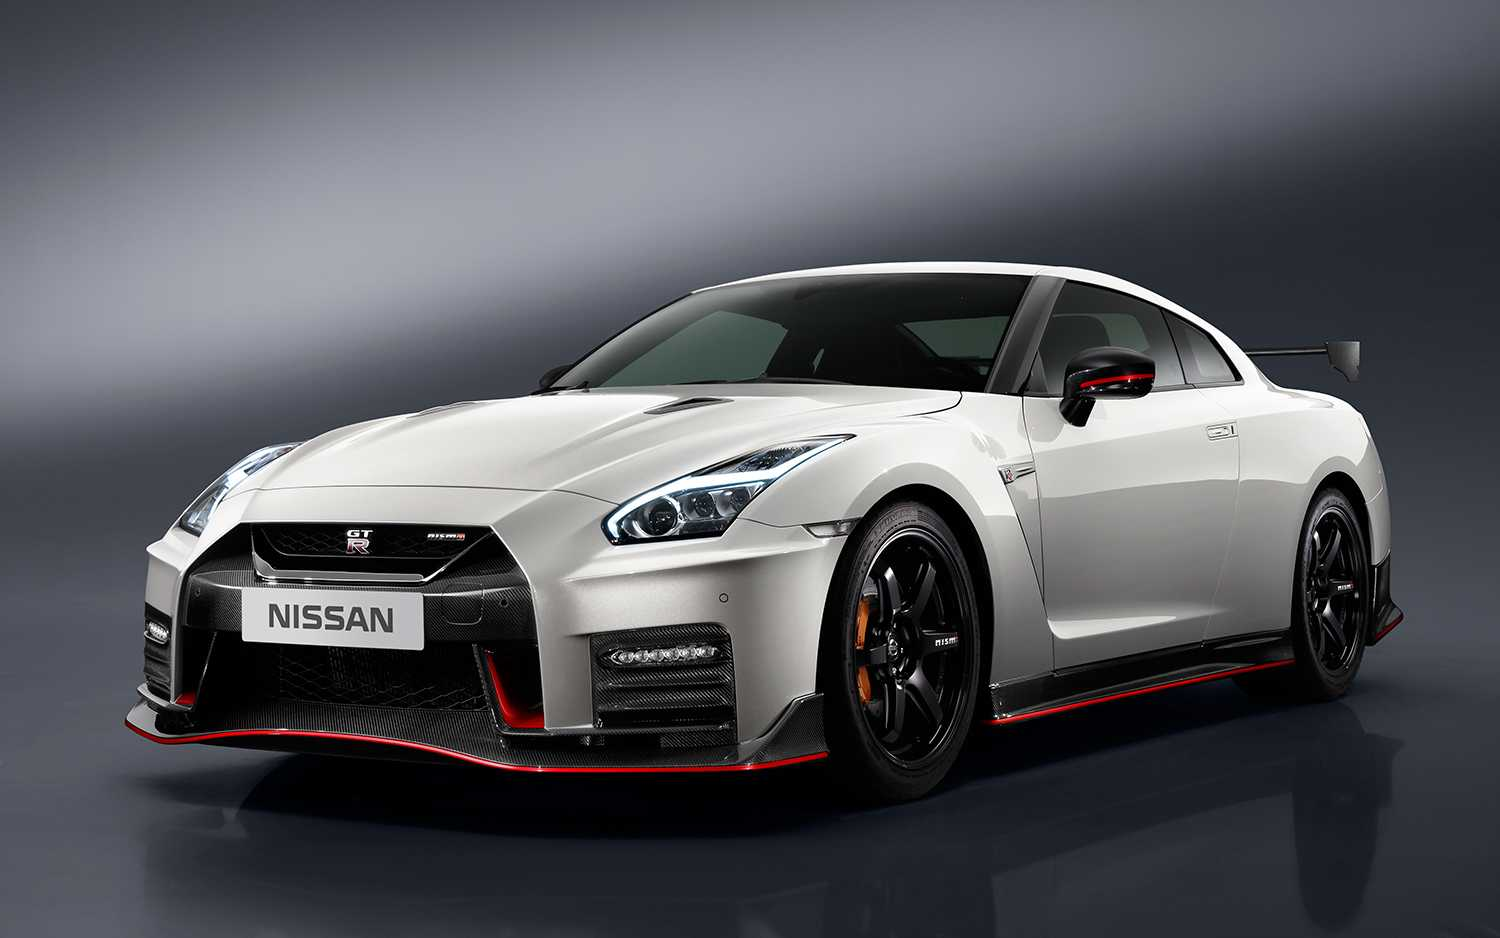 2017 Nissan Gt R Nismo Pricing Surges To 176 585